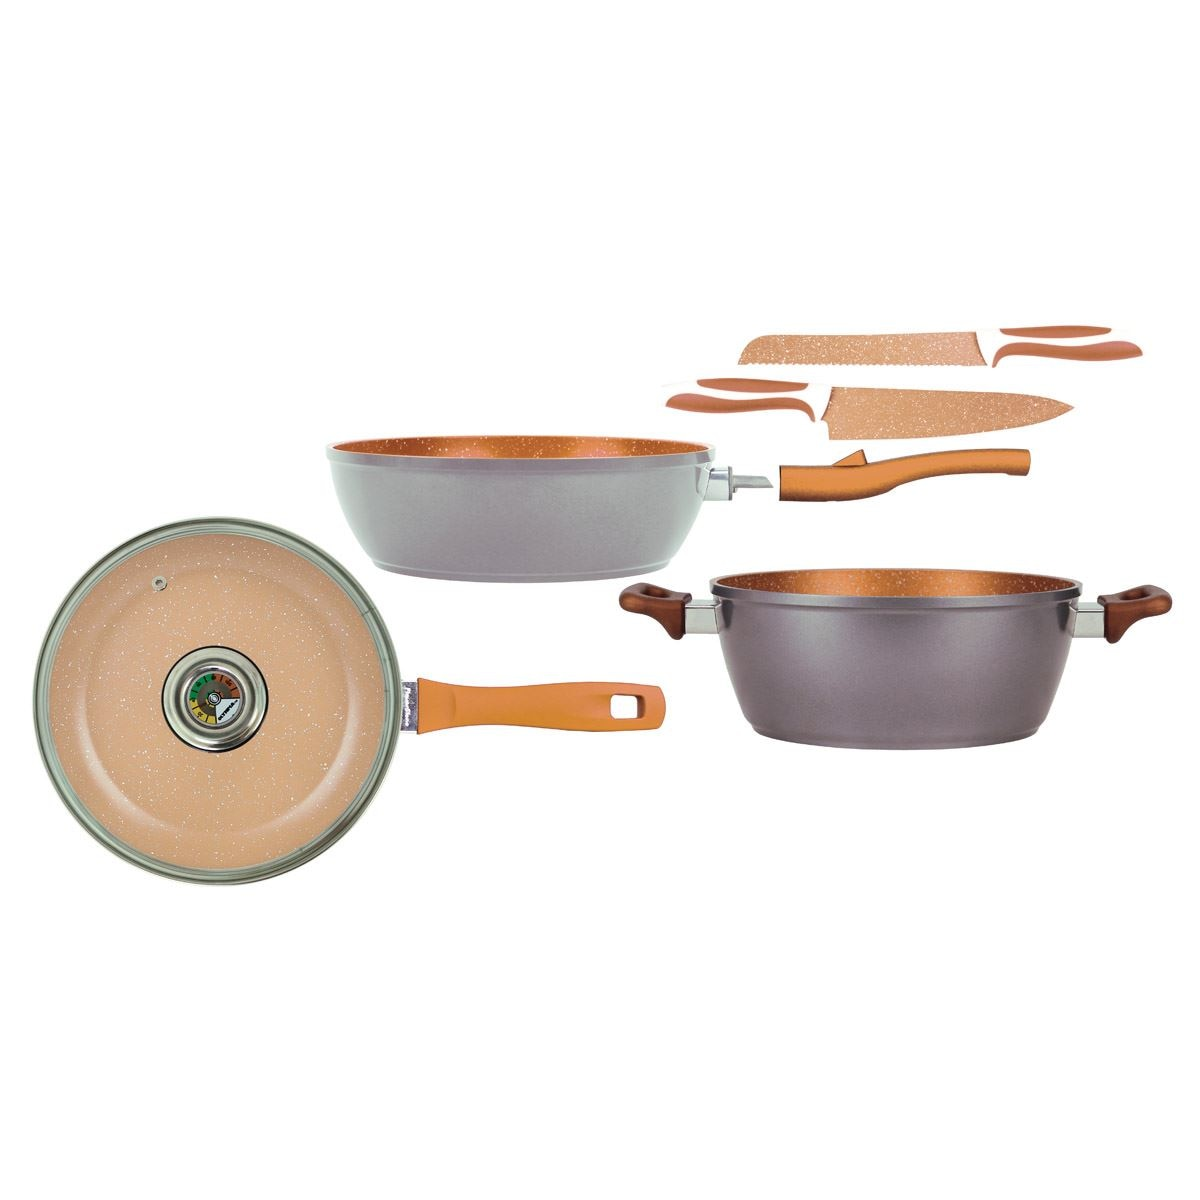 Batería master set copper  - Sanborns